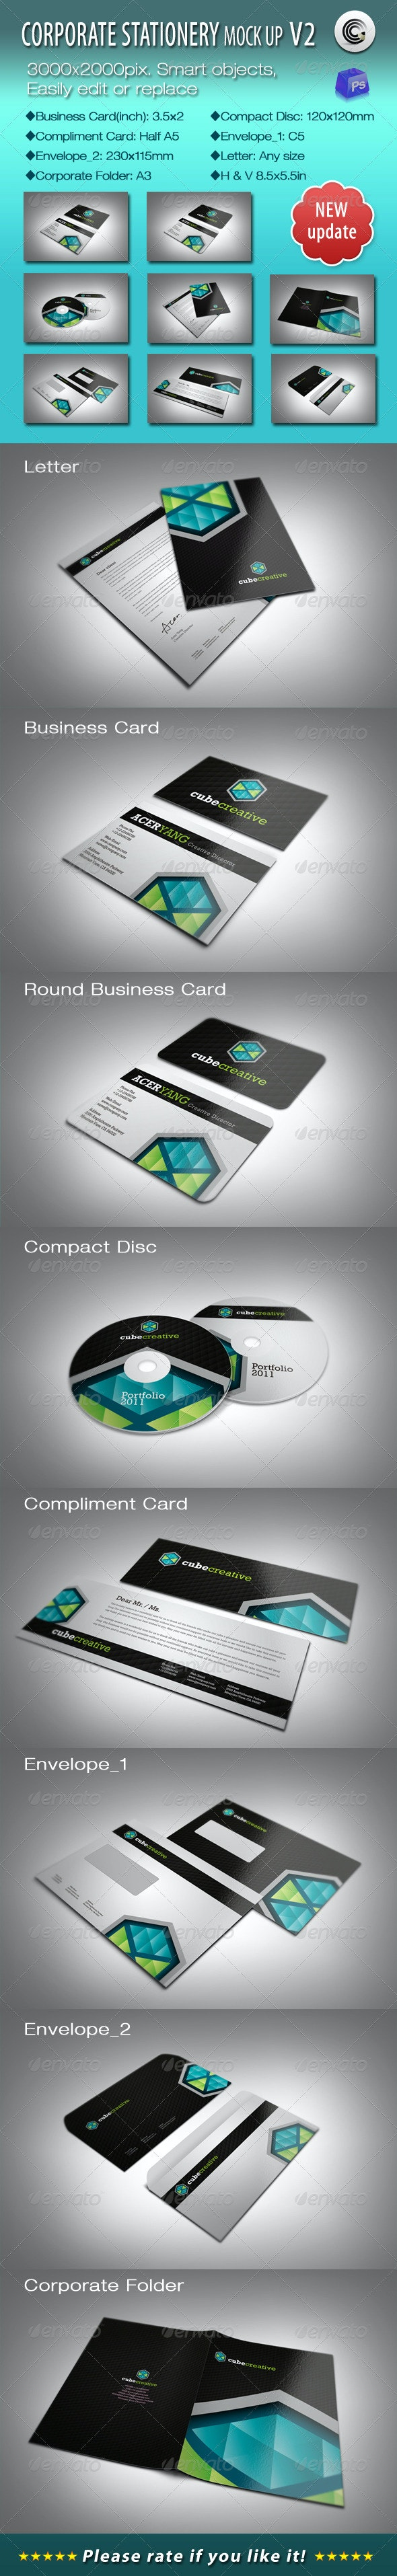 Corporate Stationery Mock-ups V2 - Stationery Print